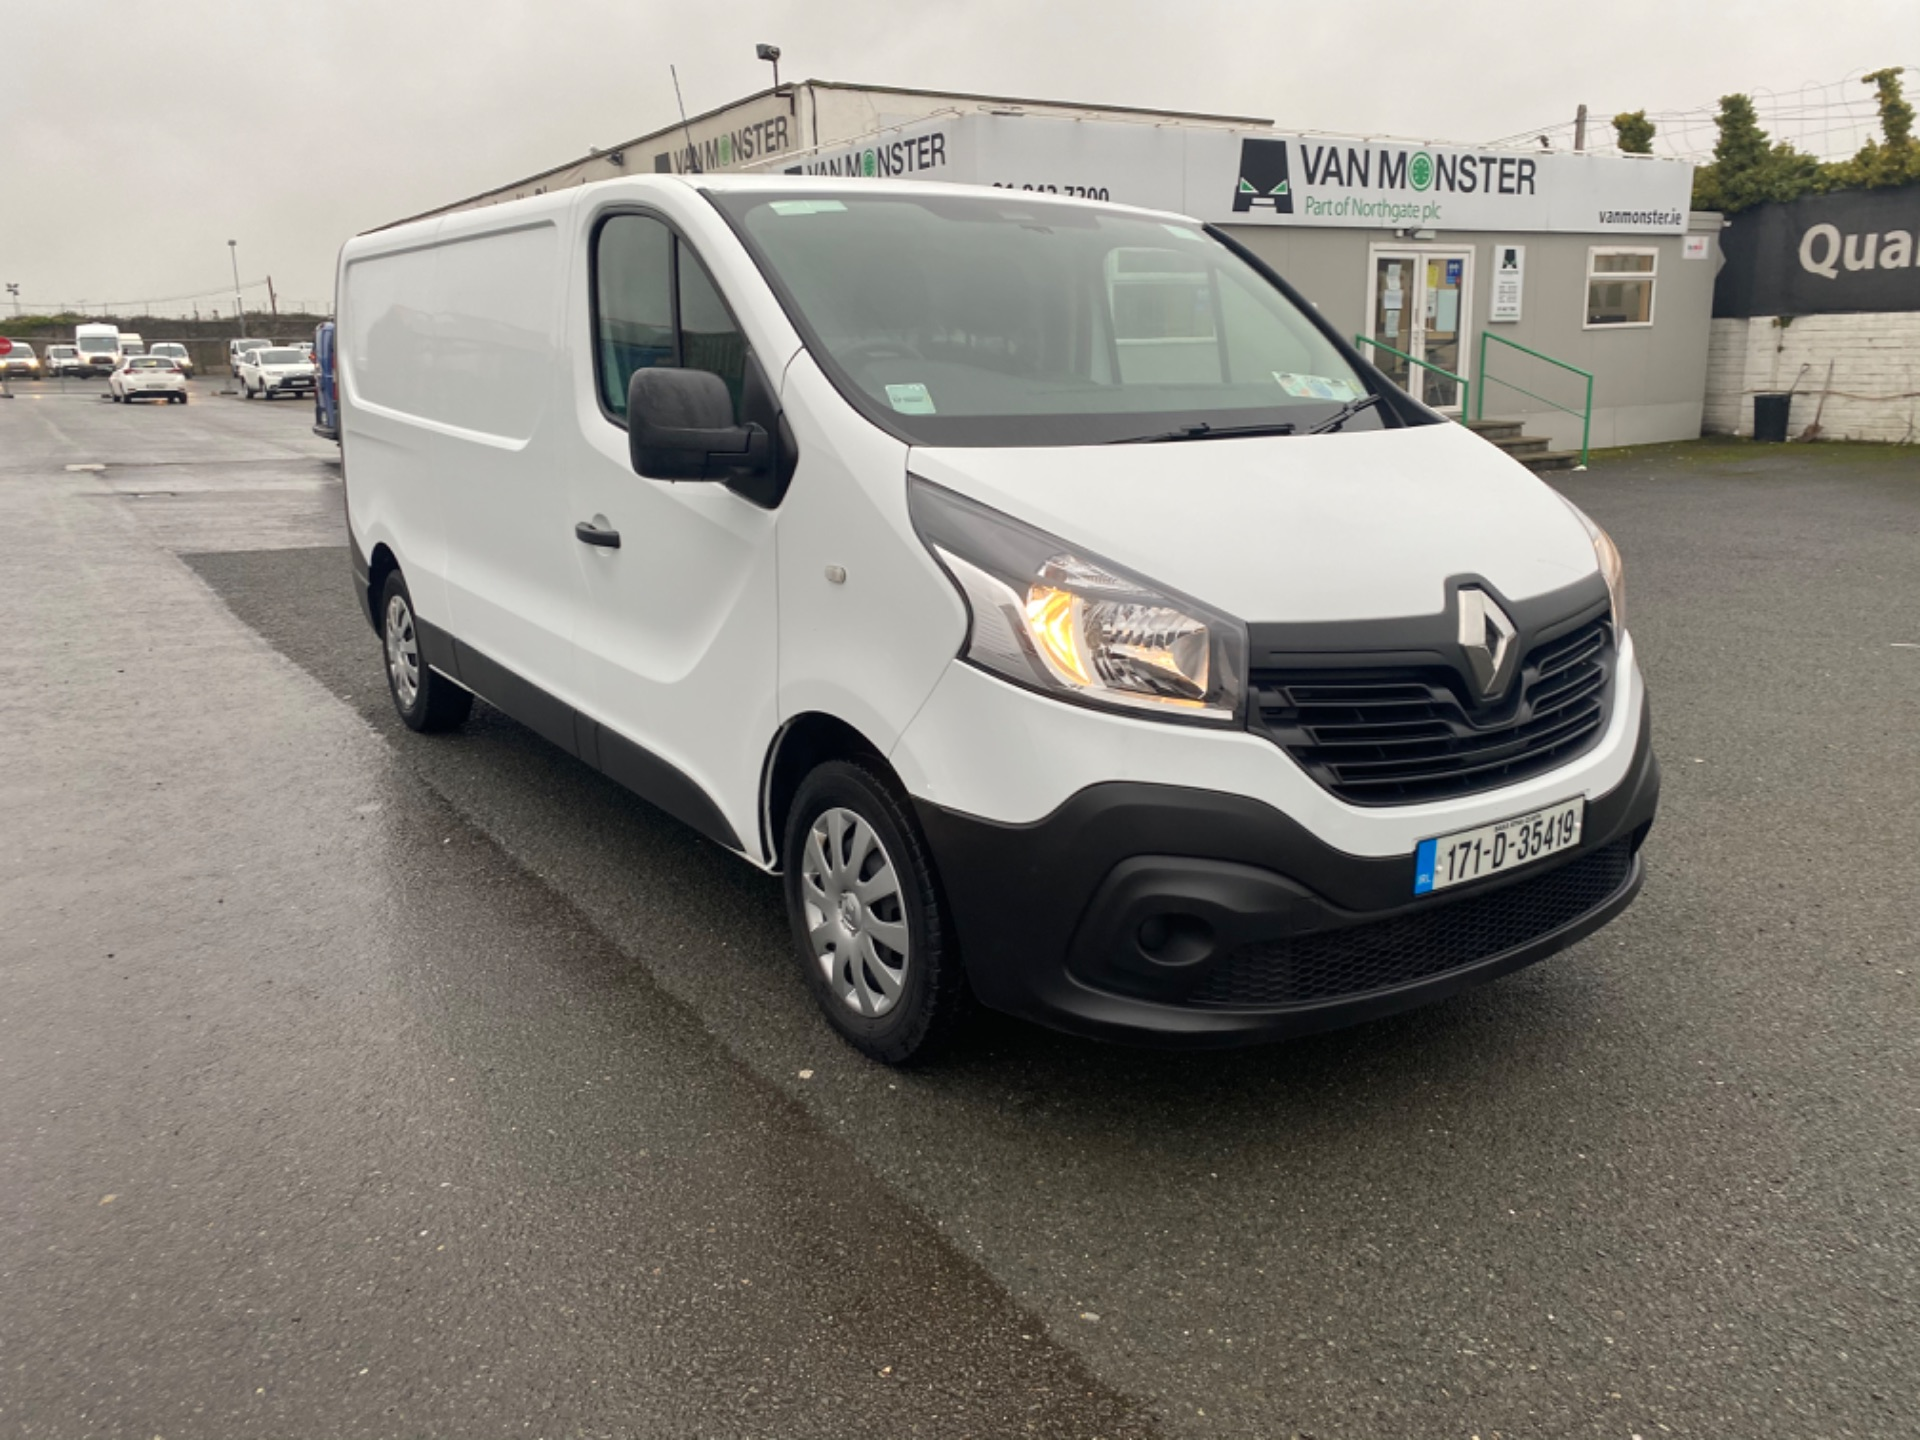 2017 Renault Trafic LL29 DCI 120 BUSINESS 3DR (171D35419) Image 1